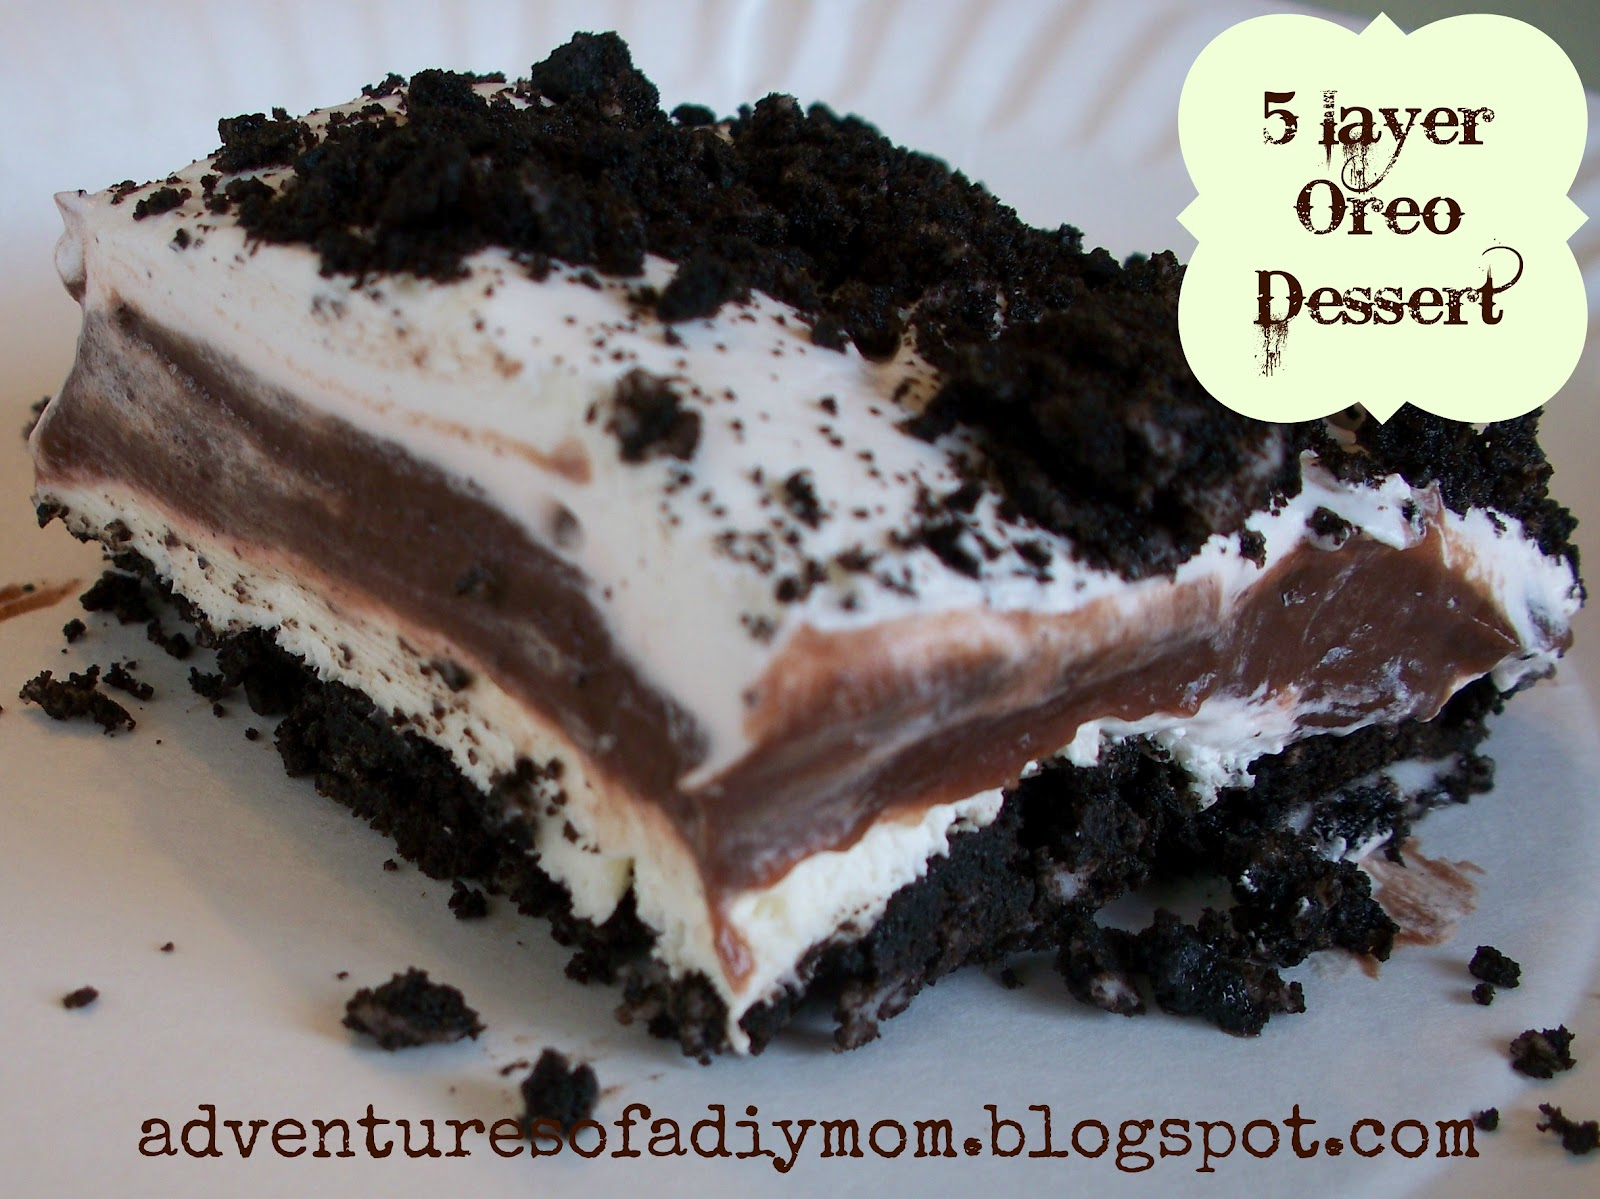 Oreo Whip Cream Pudding Dessert http://www.nap-timecreations.com/2012/08/five-layer-oreo-dessert-and-tasteful.html